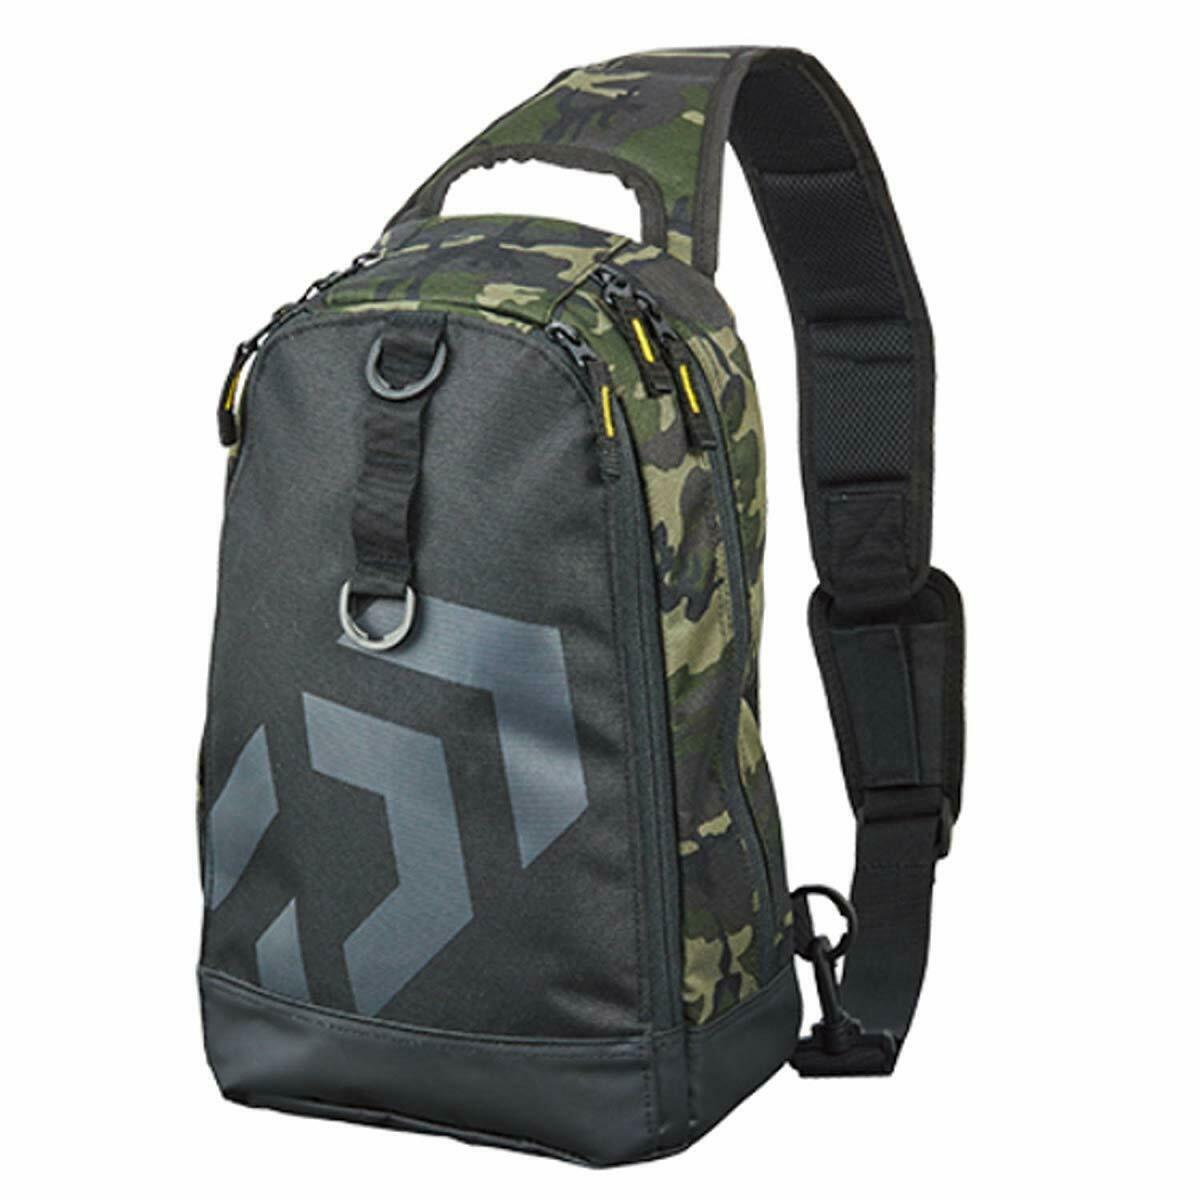 Daiwa ONE SHOULDER BAG C Olive Camouflage